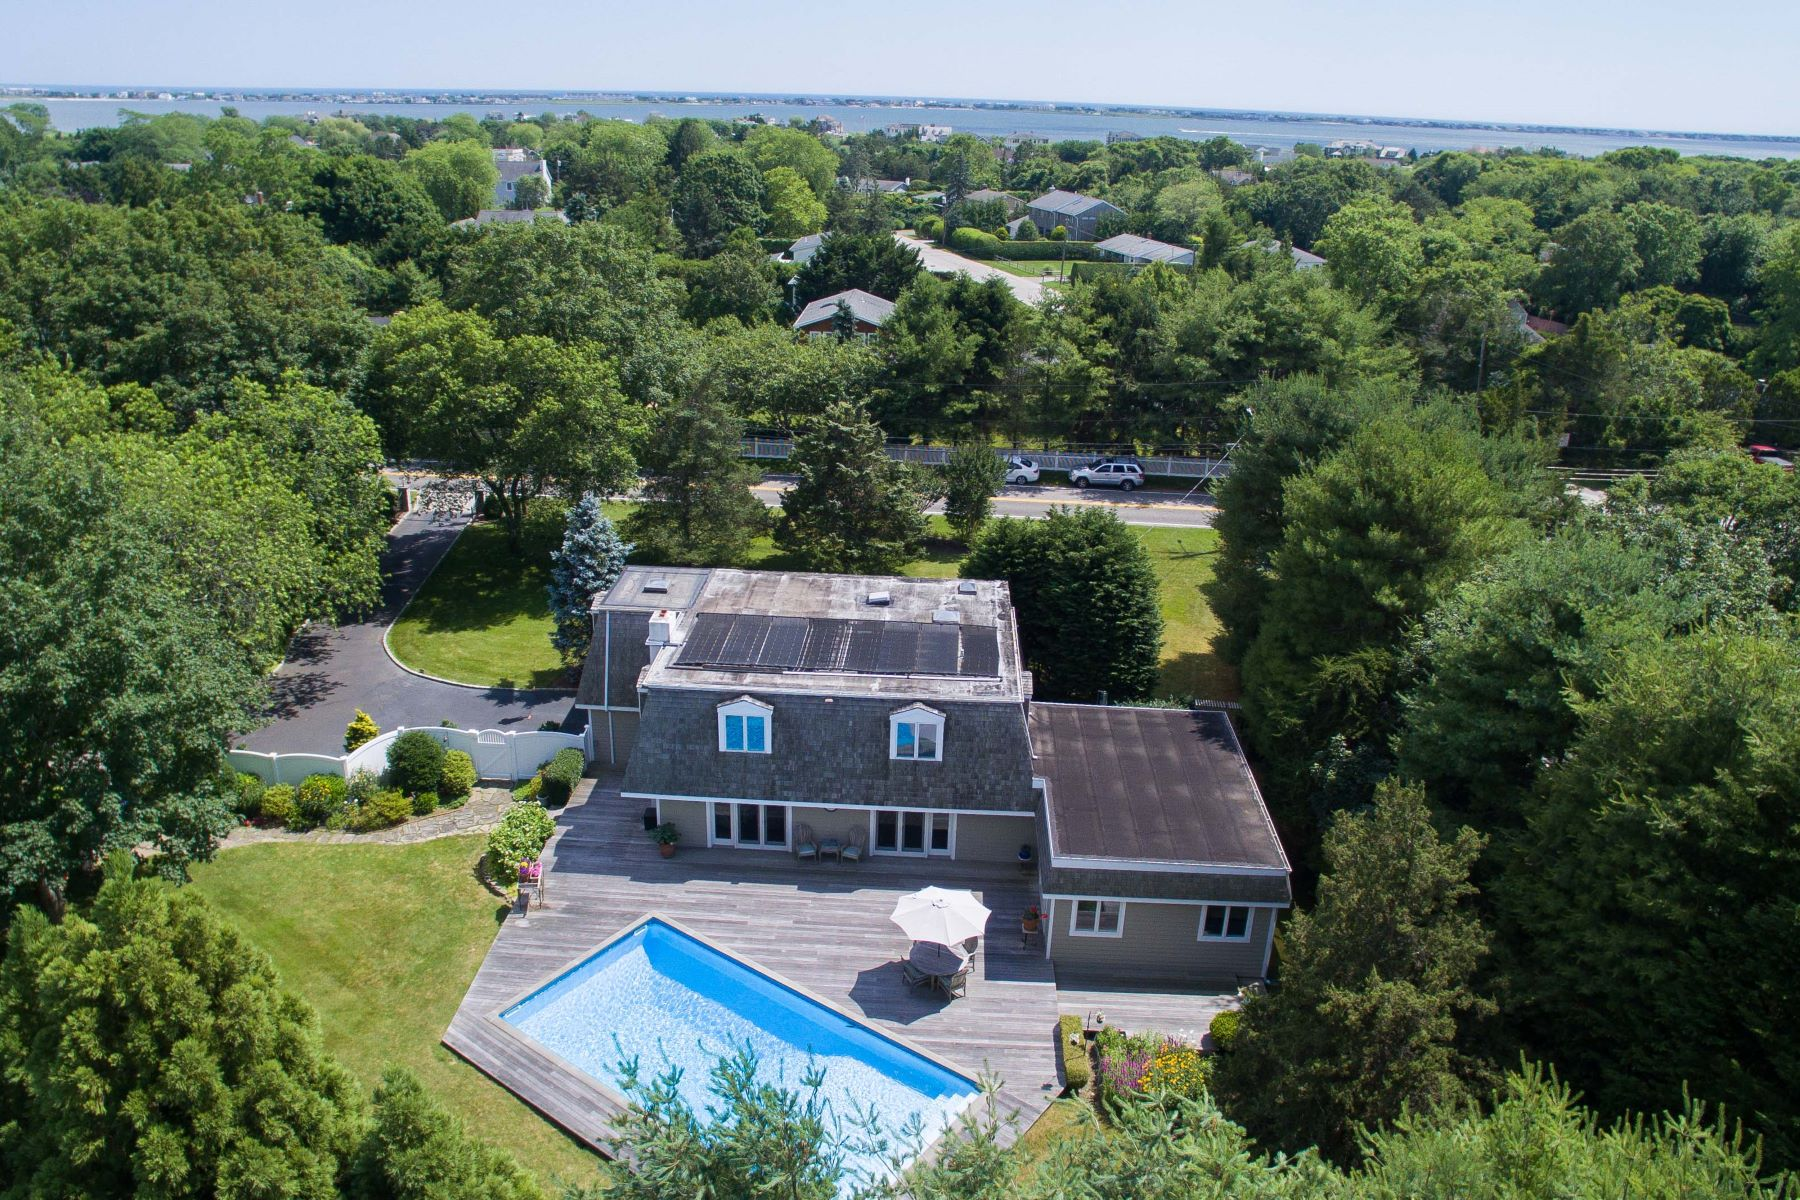 Single Family Homes for Sale at Westhampton 28 South Country Westhampton, New York 11977 United States